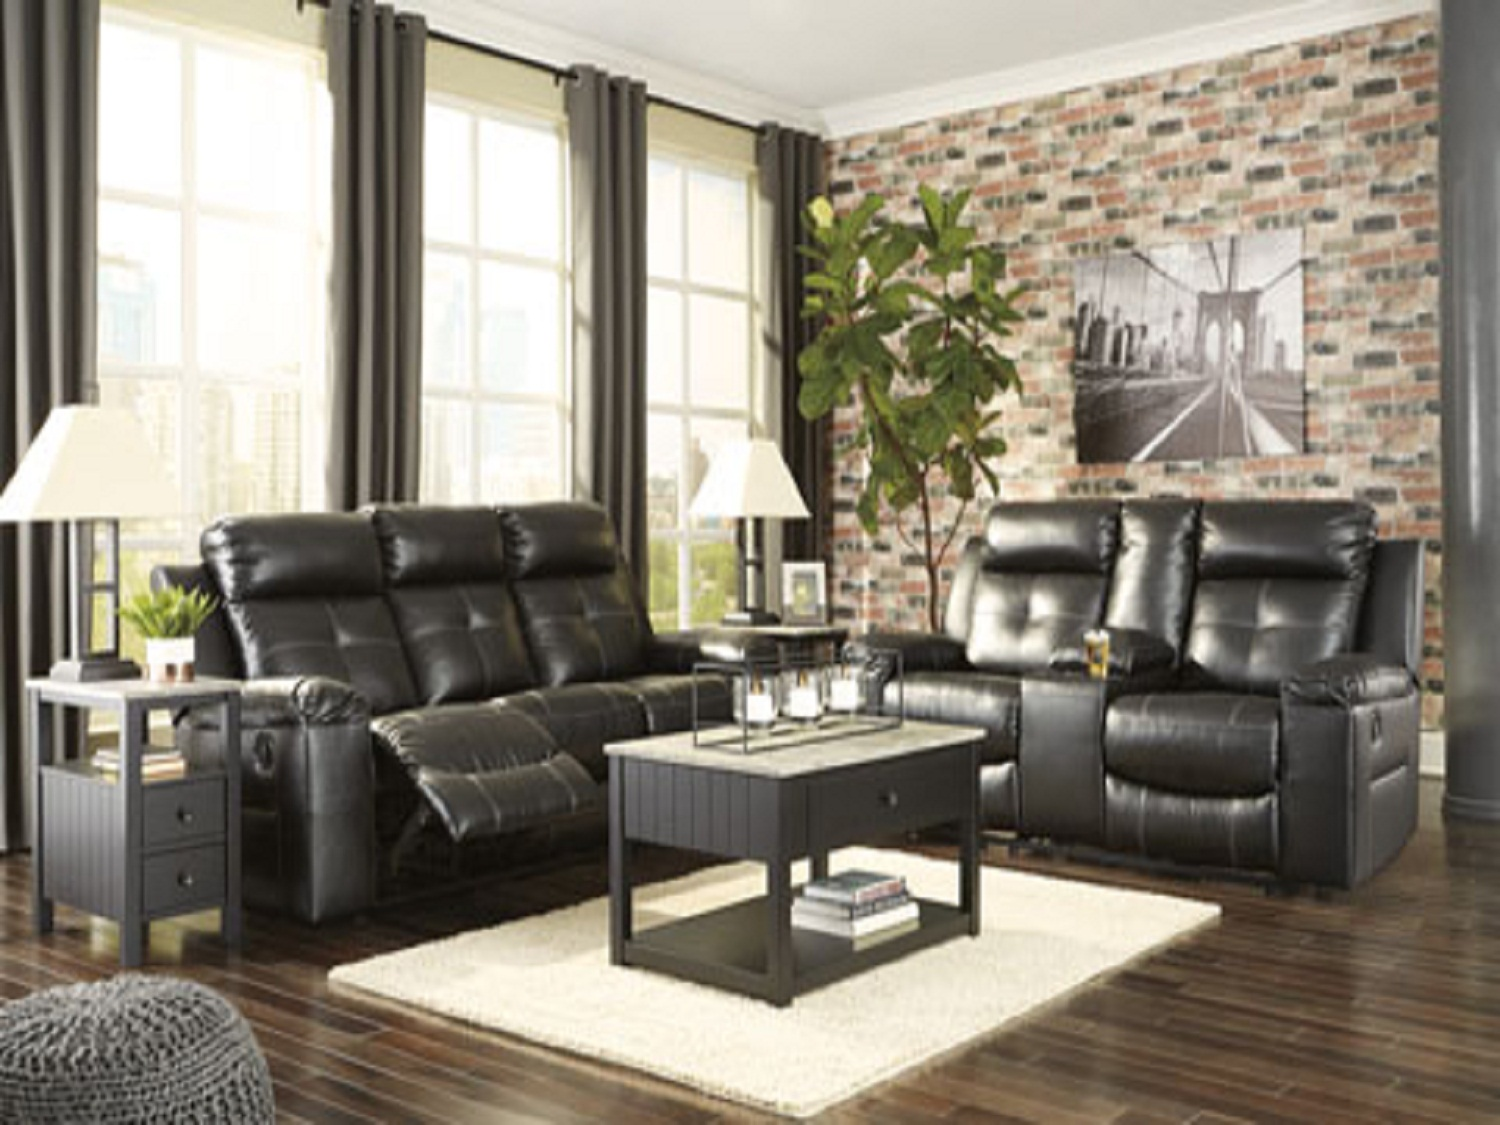 Kempten Reclining Sofa Only, 82105, Recliner Sofa Sets by Midha Furniture to Brampton, Mississauga, Etobicoke, Toronto, Scraborough, Caledon, Oakville, Markham, Ajax, Pickering, Oshawa, Richmondhill, Kitchener, Hamilton, Cambridge, Waterloo and GTA area